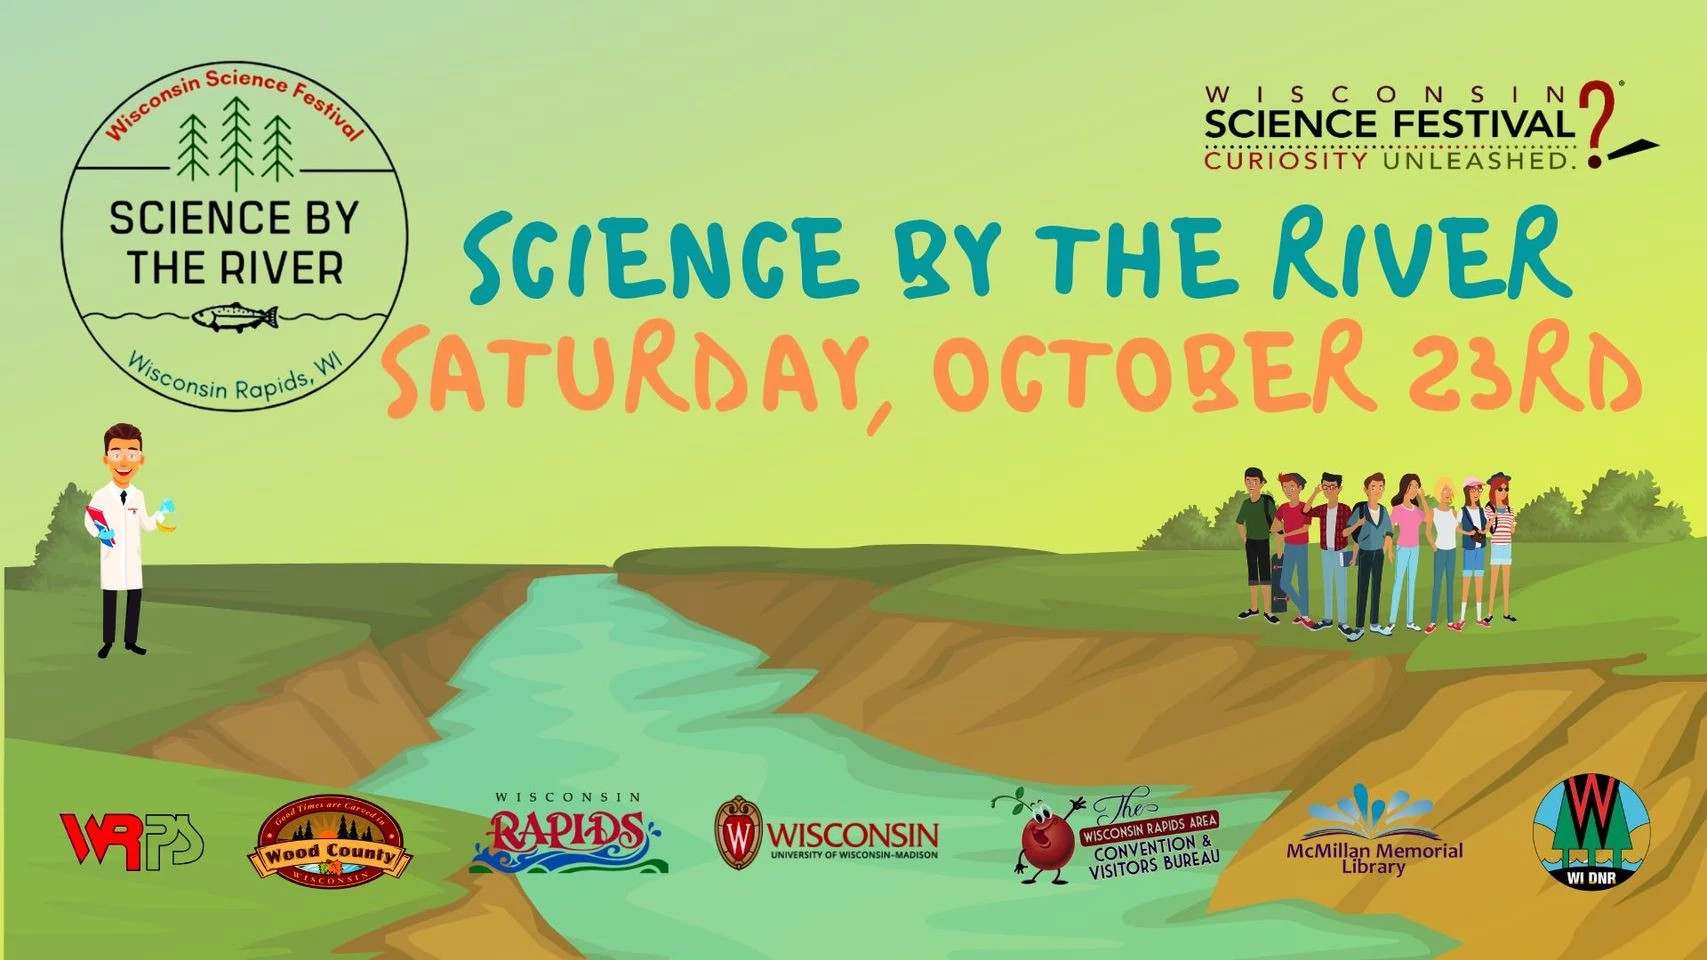 Science By The River event logo featuring landscape and river illustration with scientist and high school students